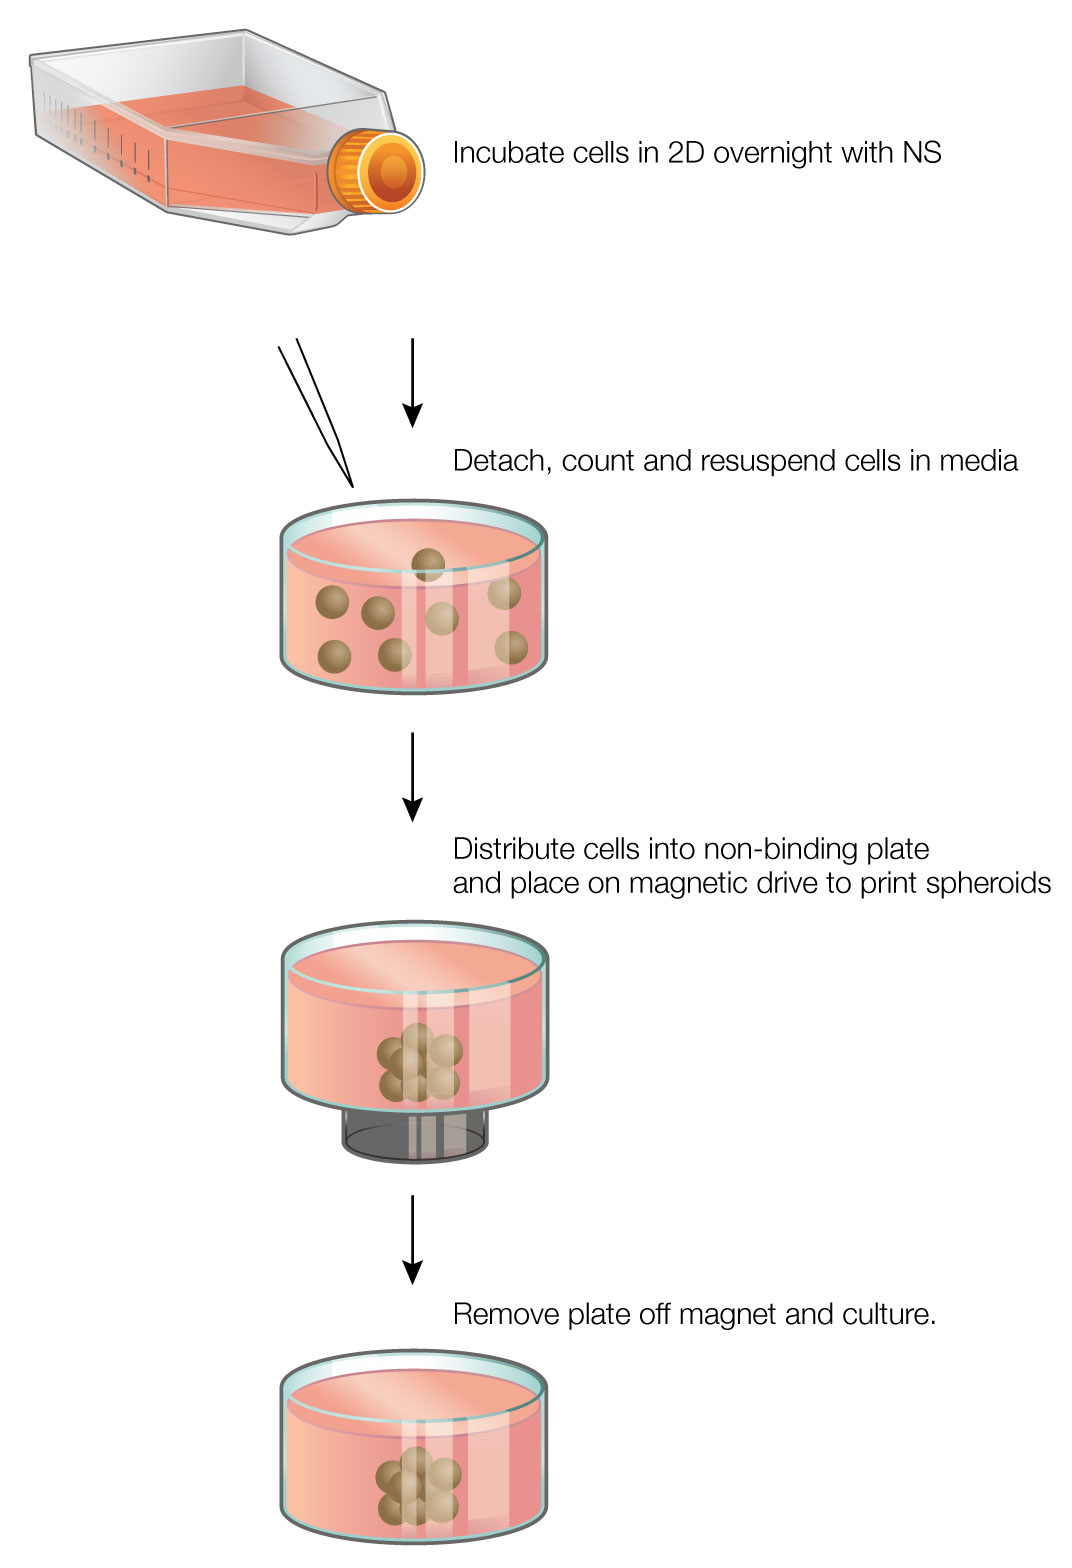 Luminescent viability assays in. Cells clipart cell culture